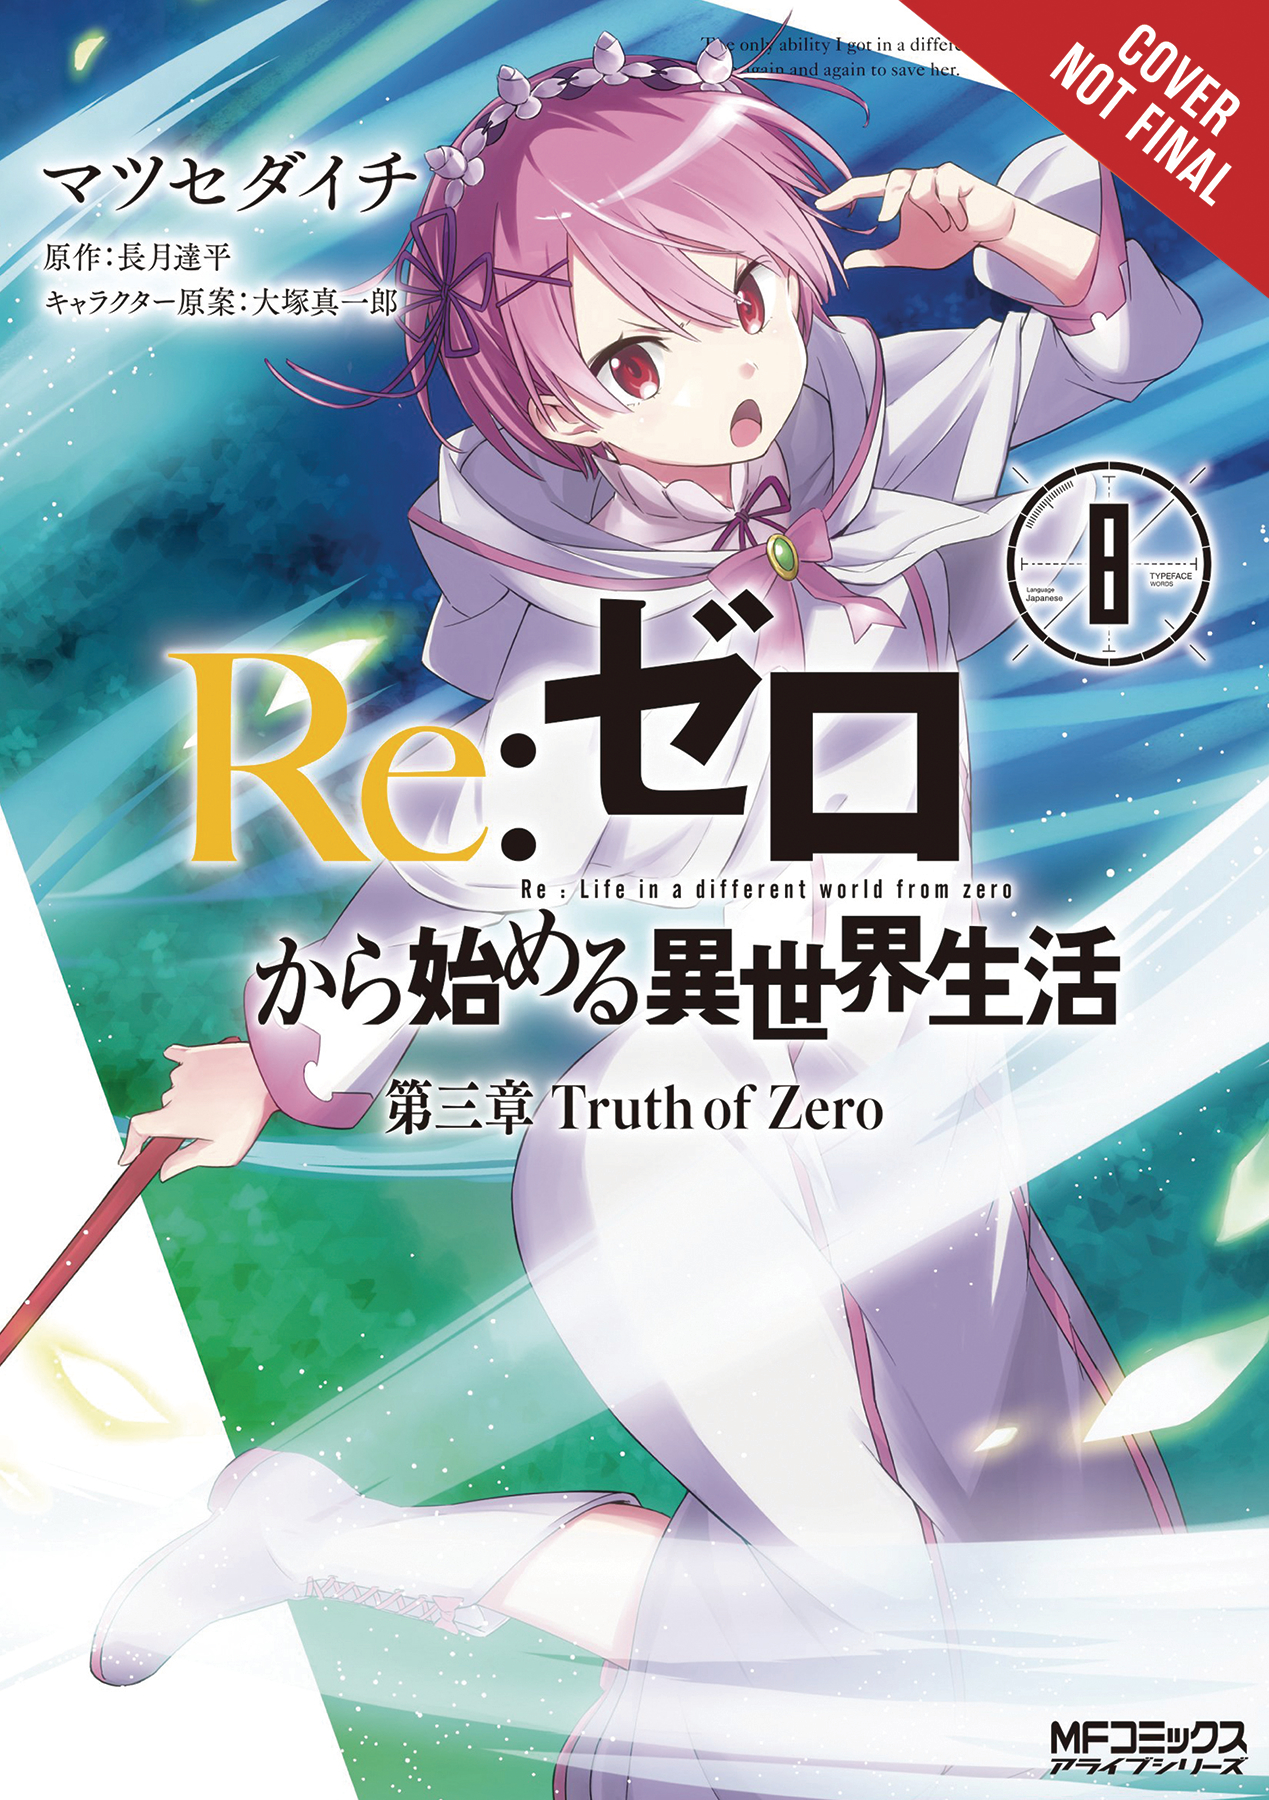 RE ZERO SLIAW CHAPTER 3 TRUTH ZERO GN VOL 08